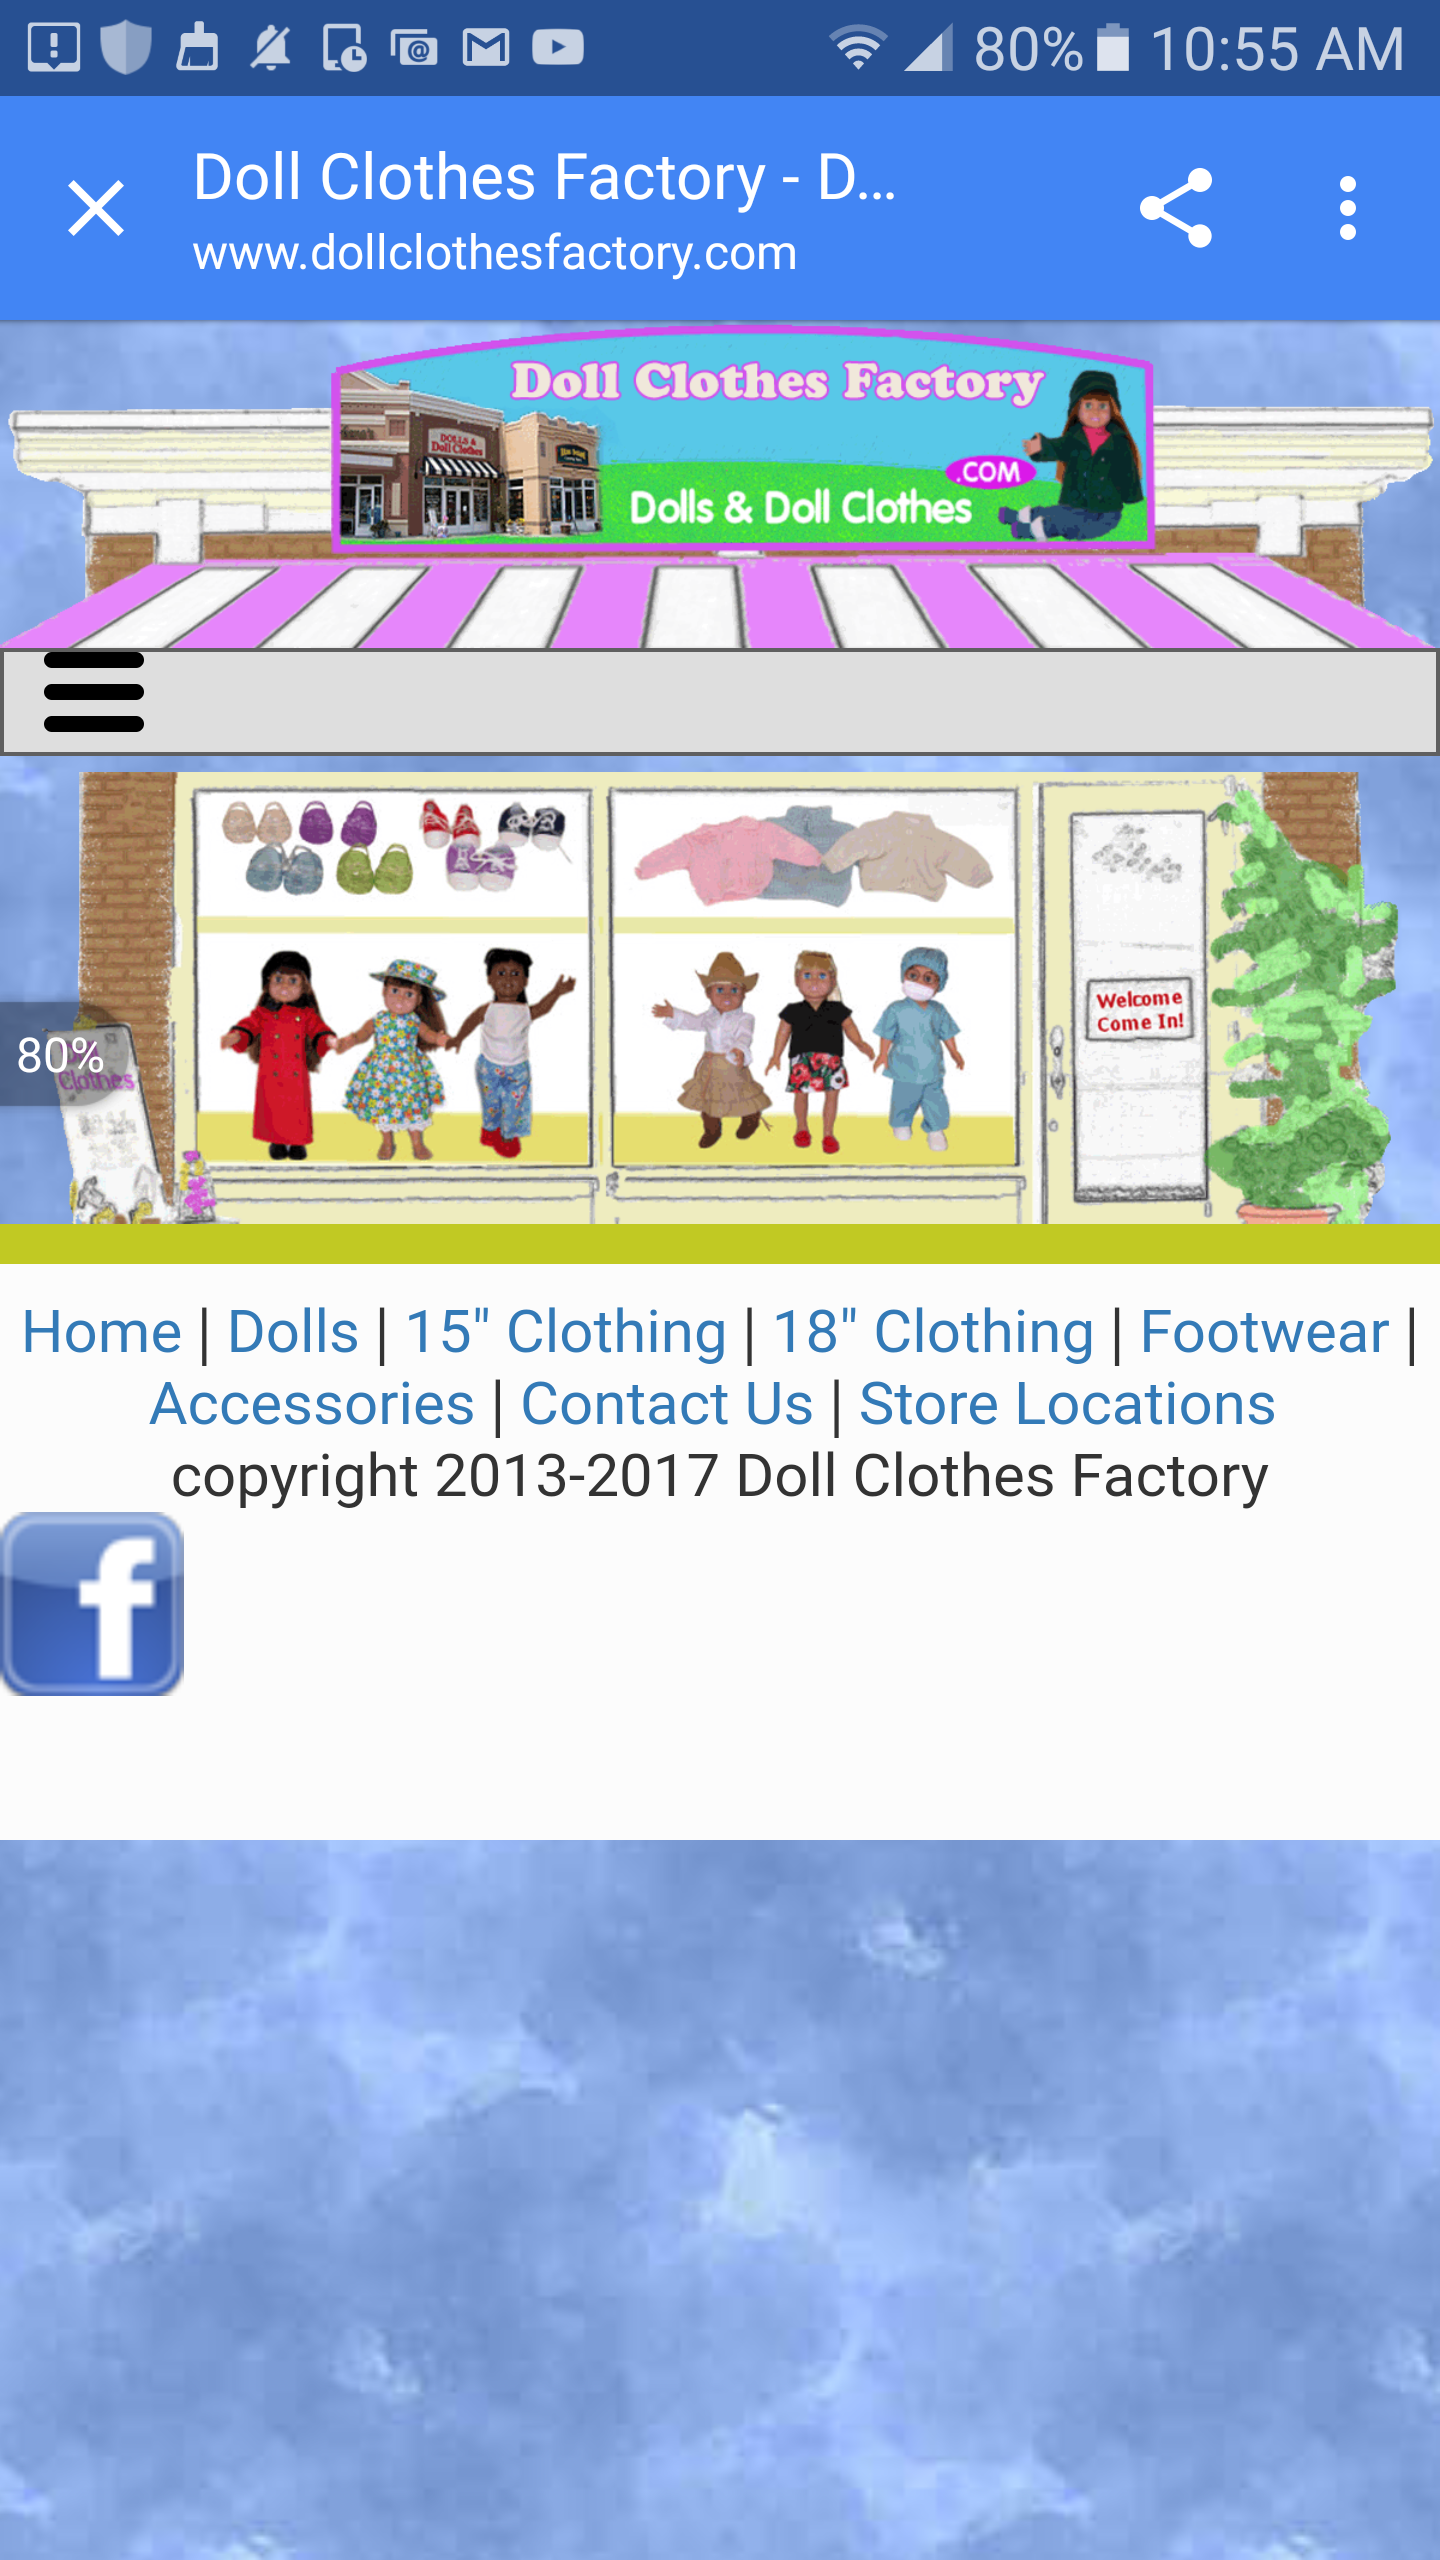 Doll Clothes Factory